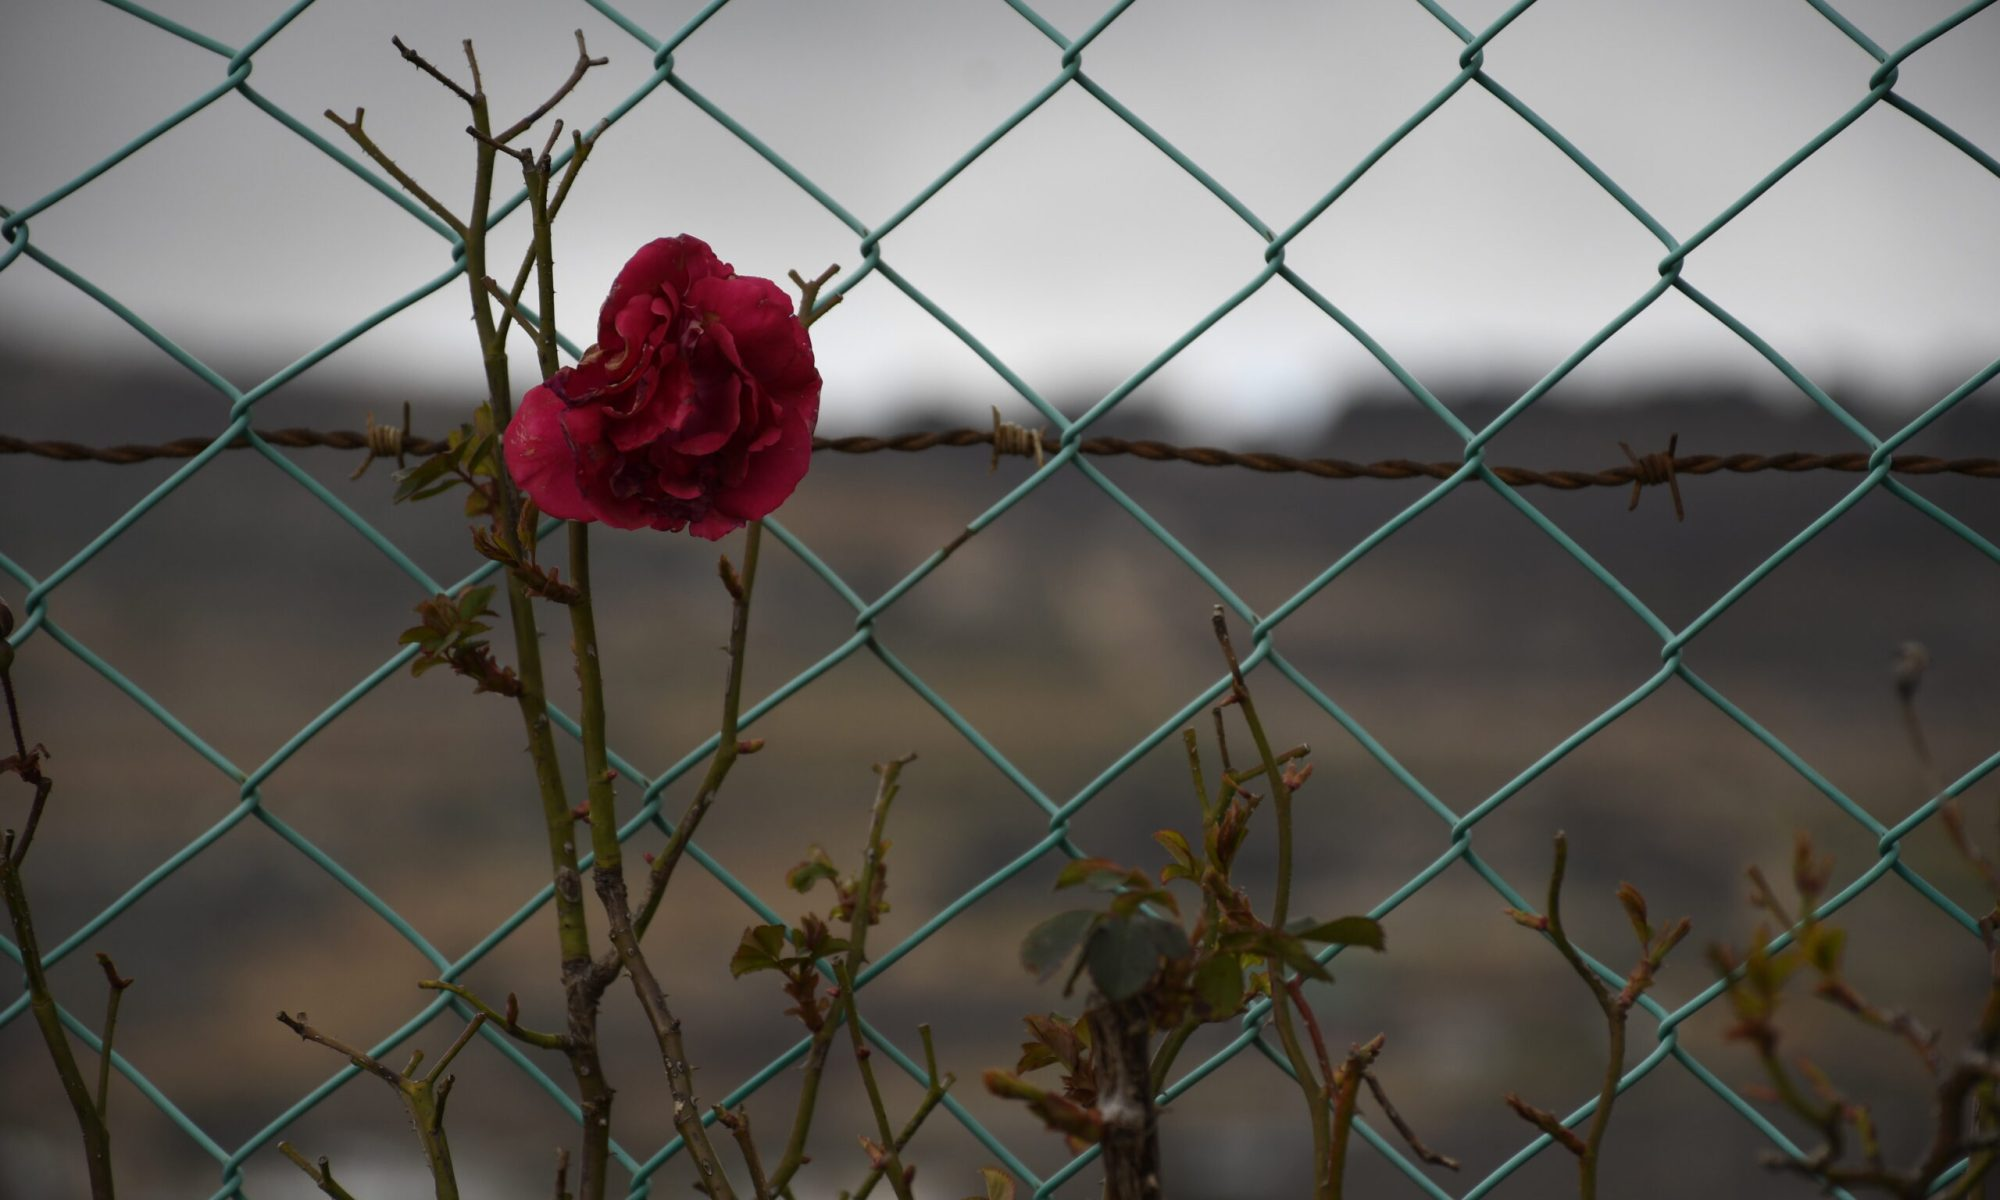 Rose blooming on a wire fence